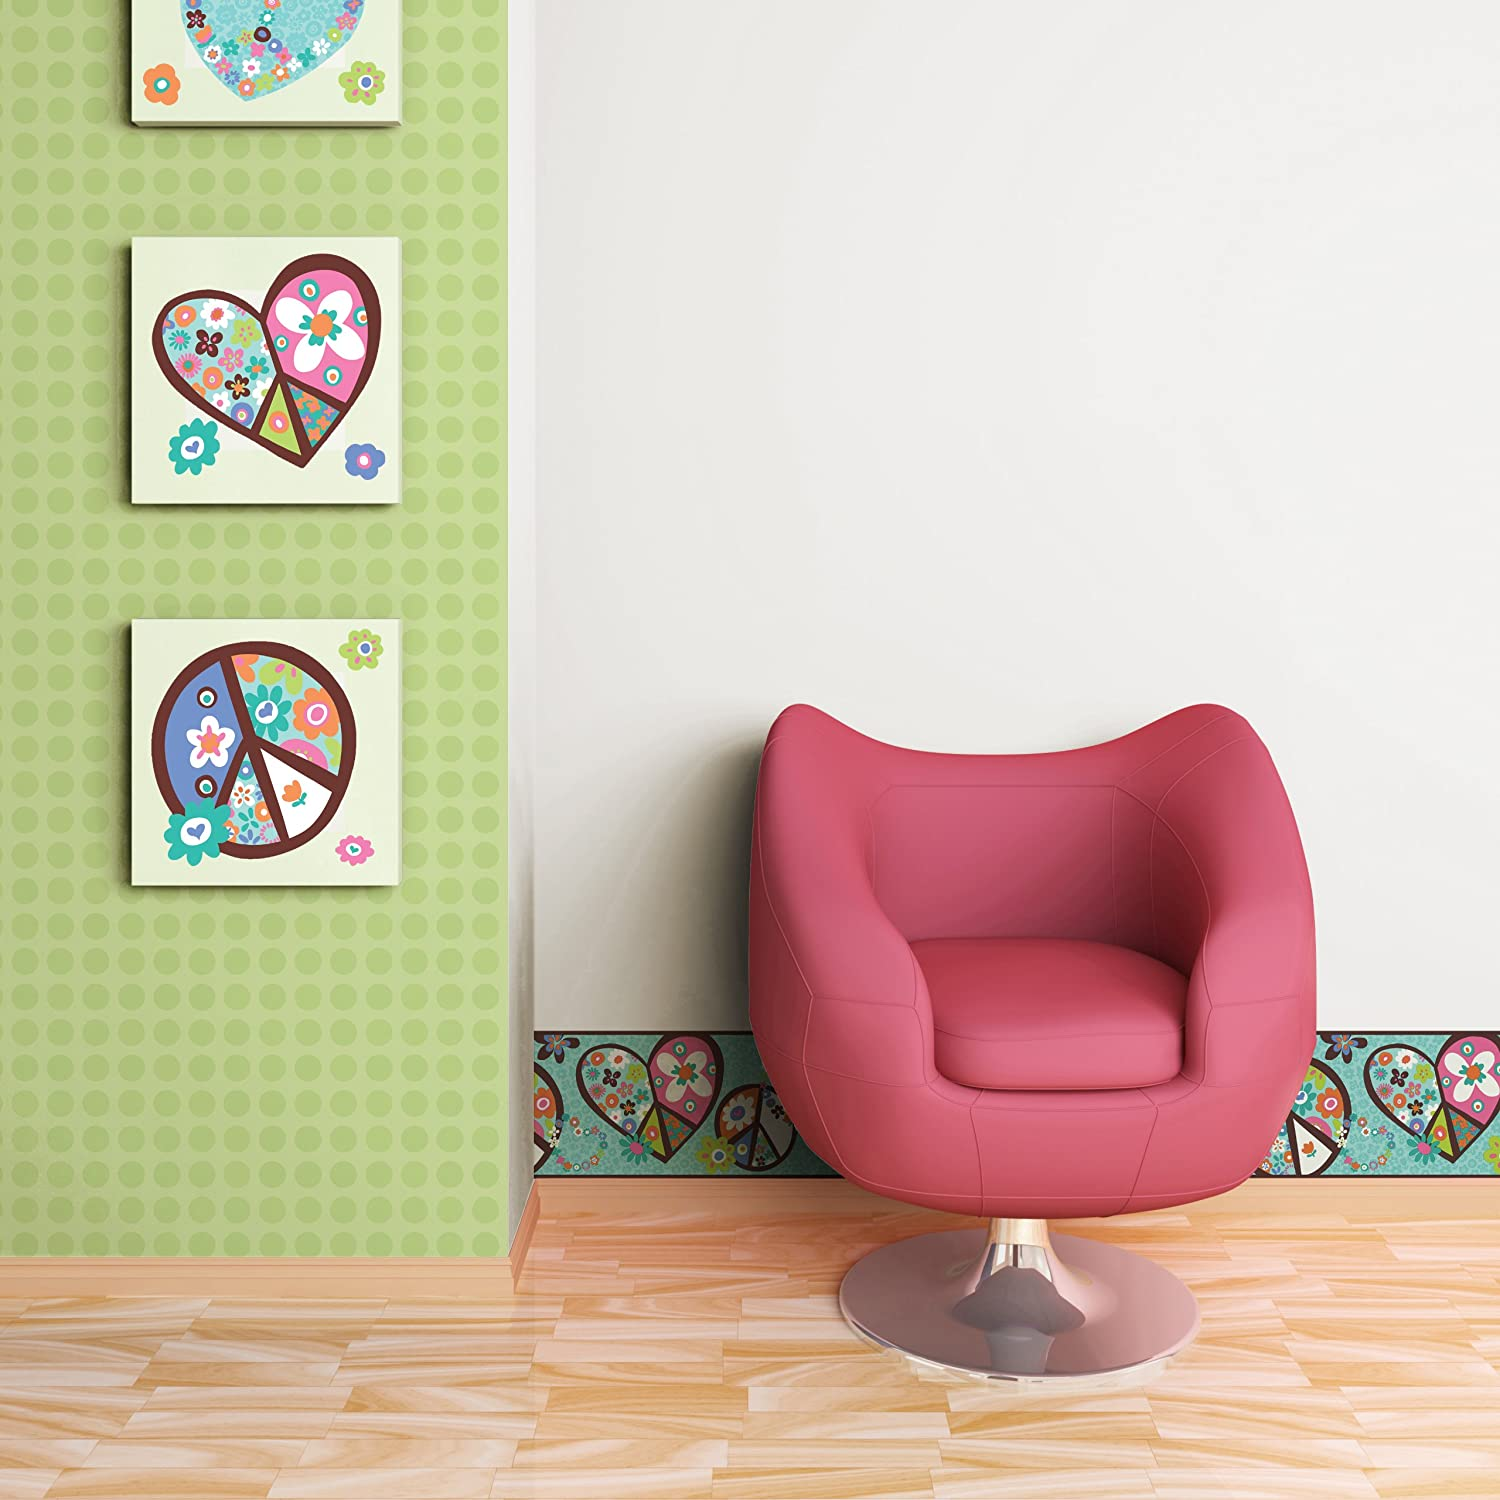 Wall Decals Lime York Wallcoverings Bright Spring Green Wall In A Box WIB1002 Peace and Love Wallpaper